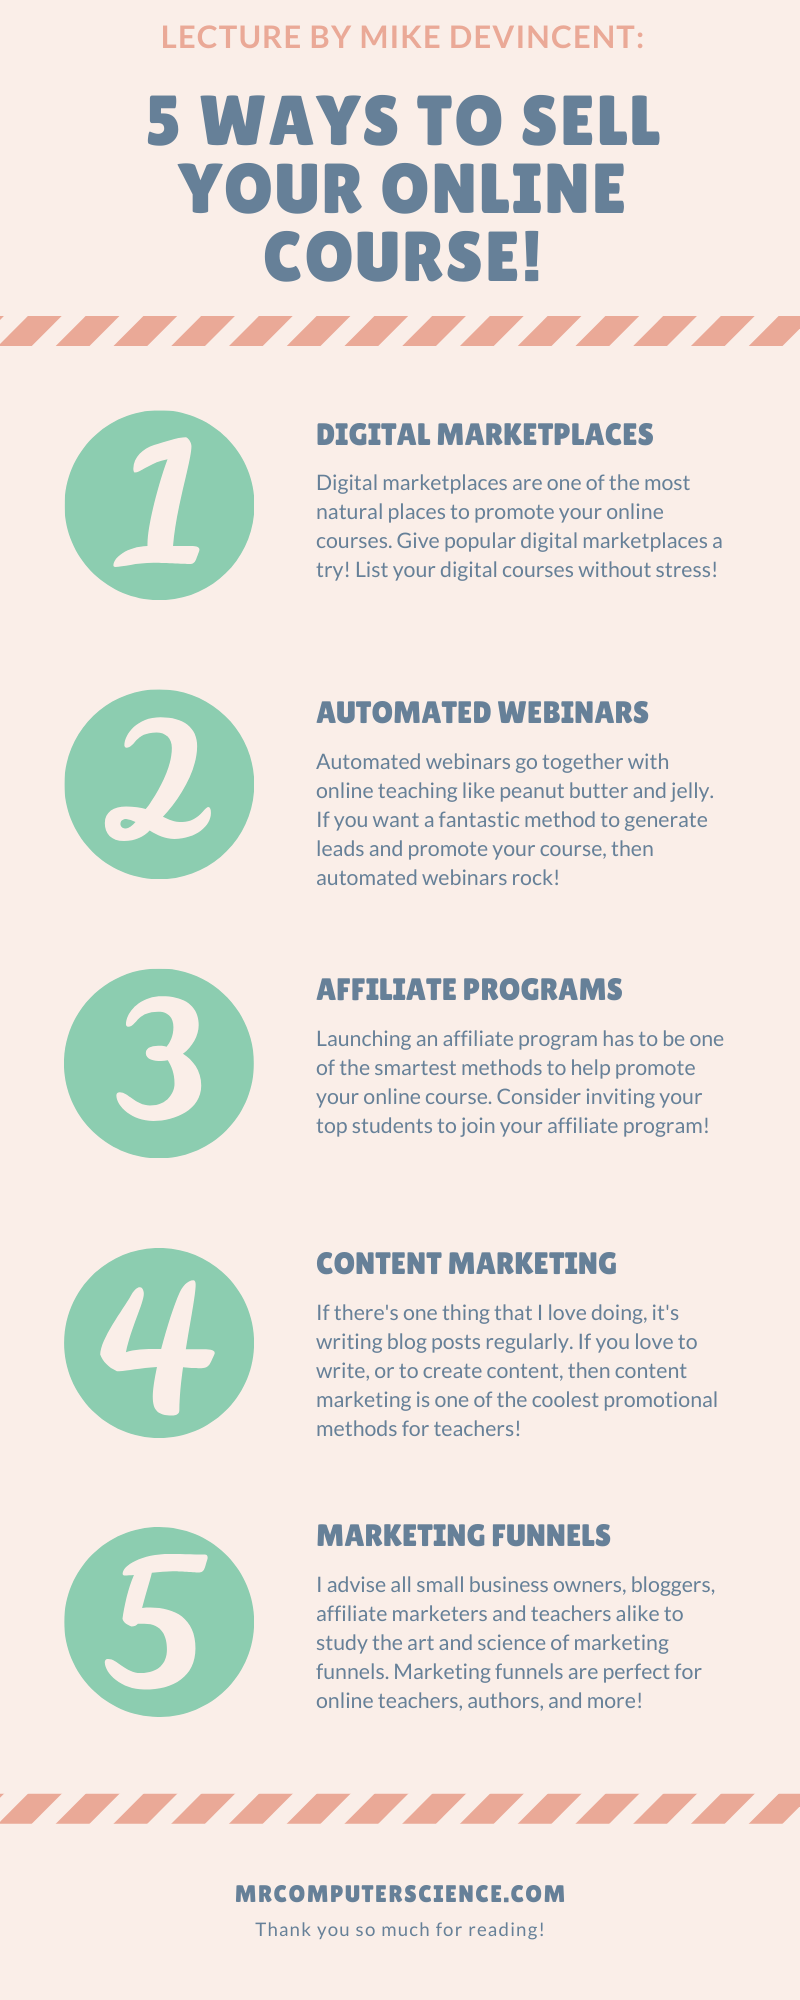 MrComputerScience.com Infographic - 5 Elite Ways To Help Sell Your Online Course Without A Big Budget!